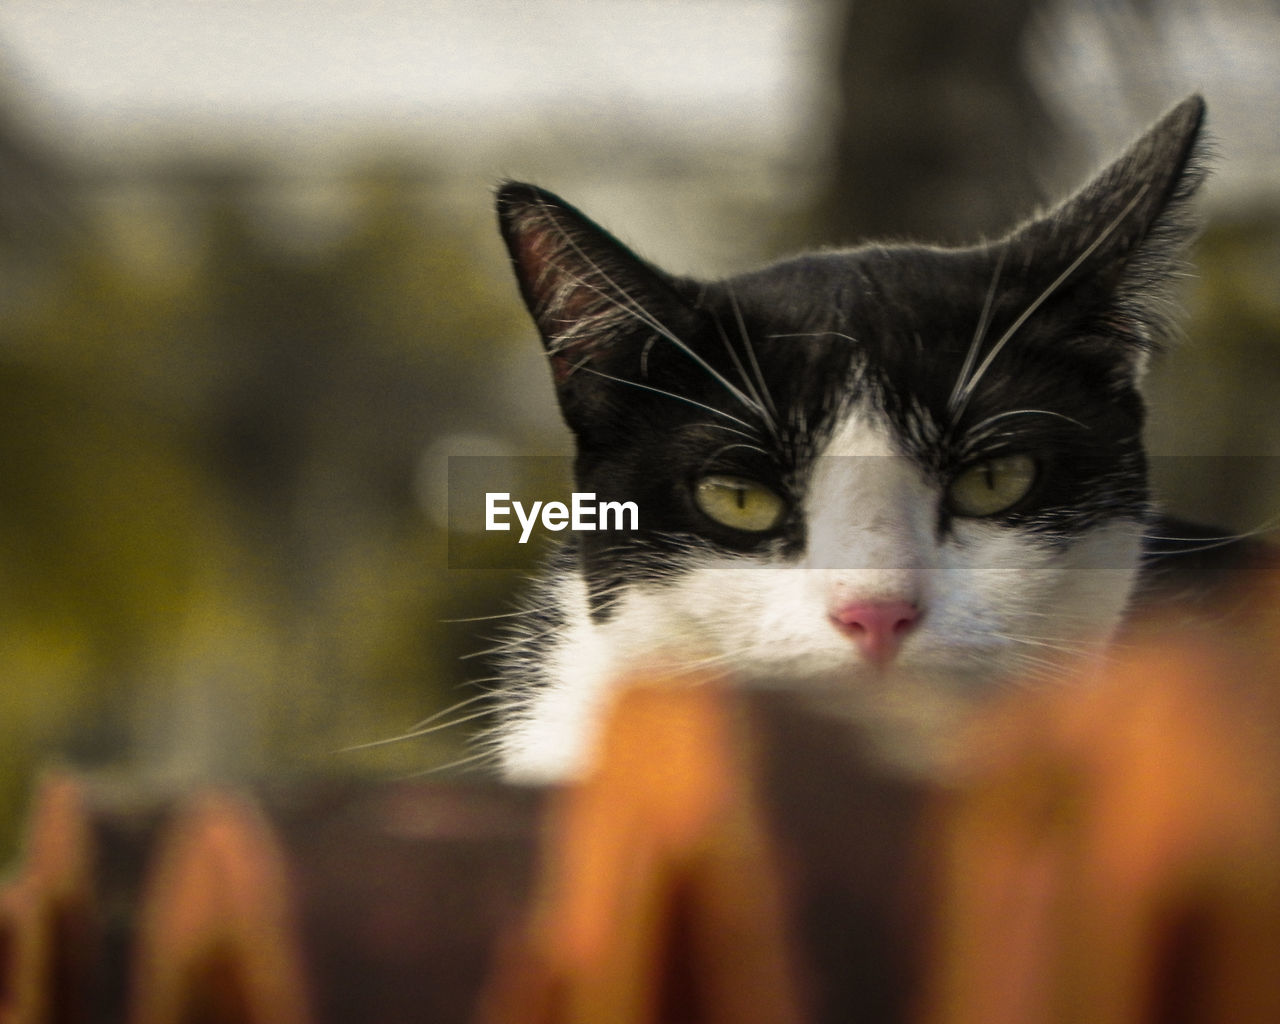 domestic cat, cat, domestic, feline, one animal, animal themes, animal, pets, mammal, domestic animals, vertebrate, close-up, selective focus, no people, animal body part, whisker, day, portrait, looking at camera, animal head, animal eye, yellow eyes